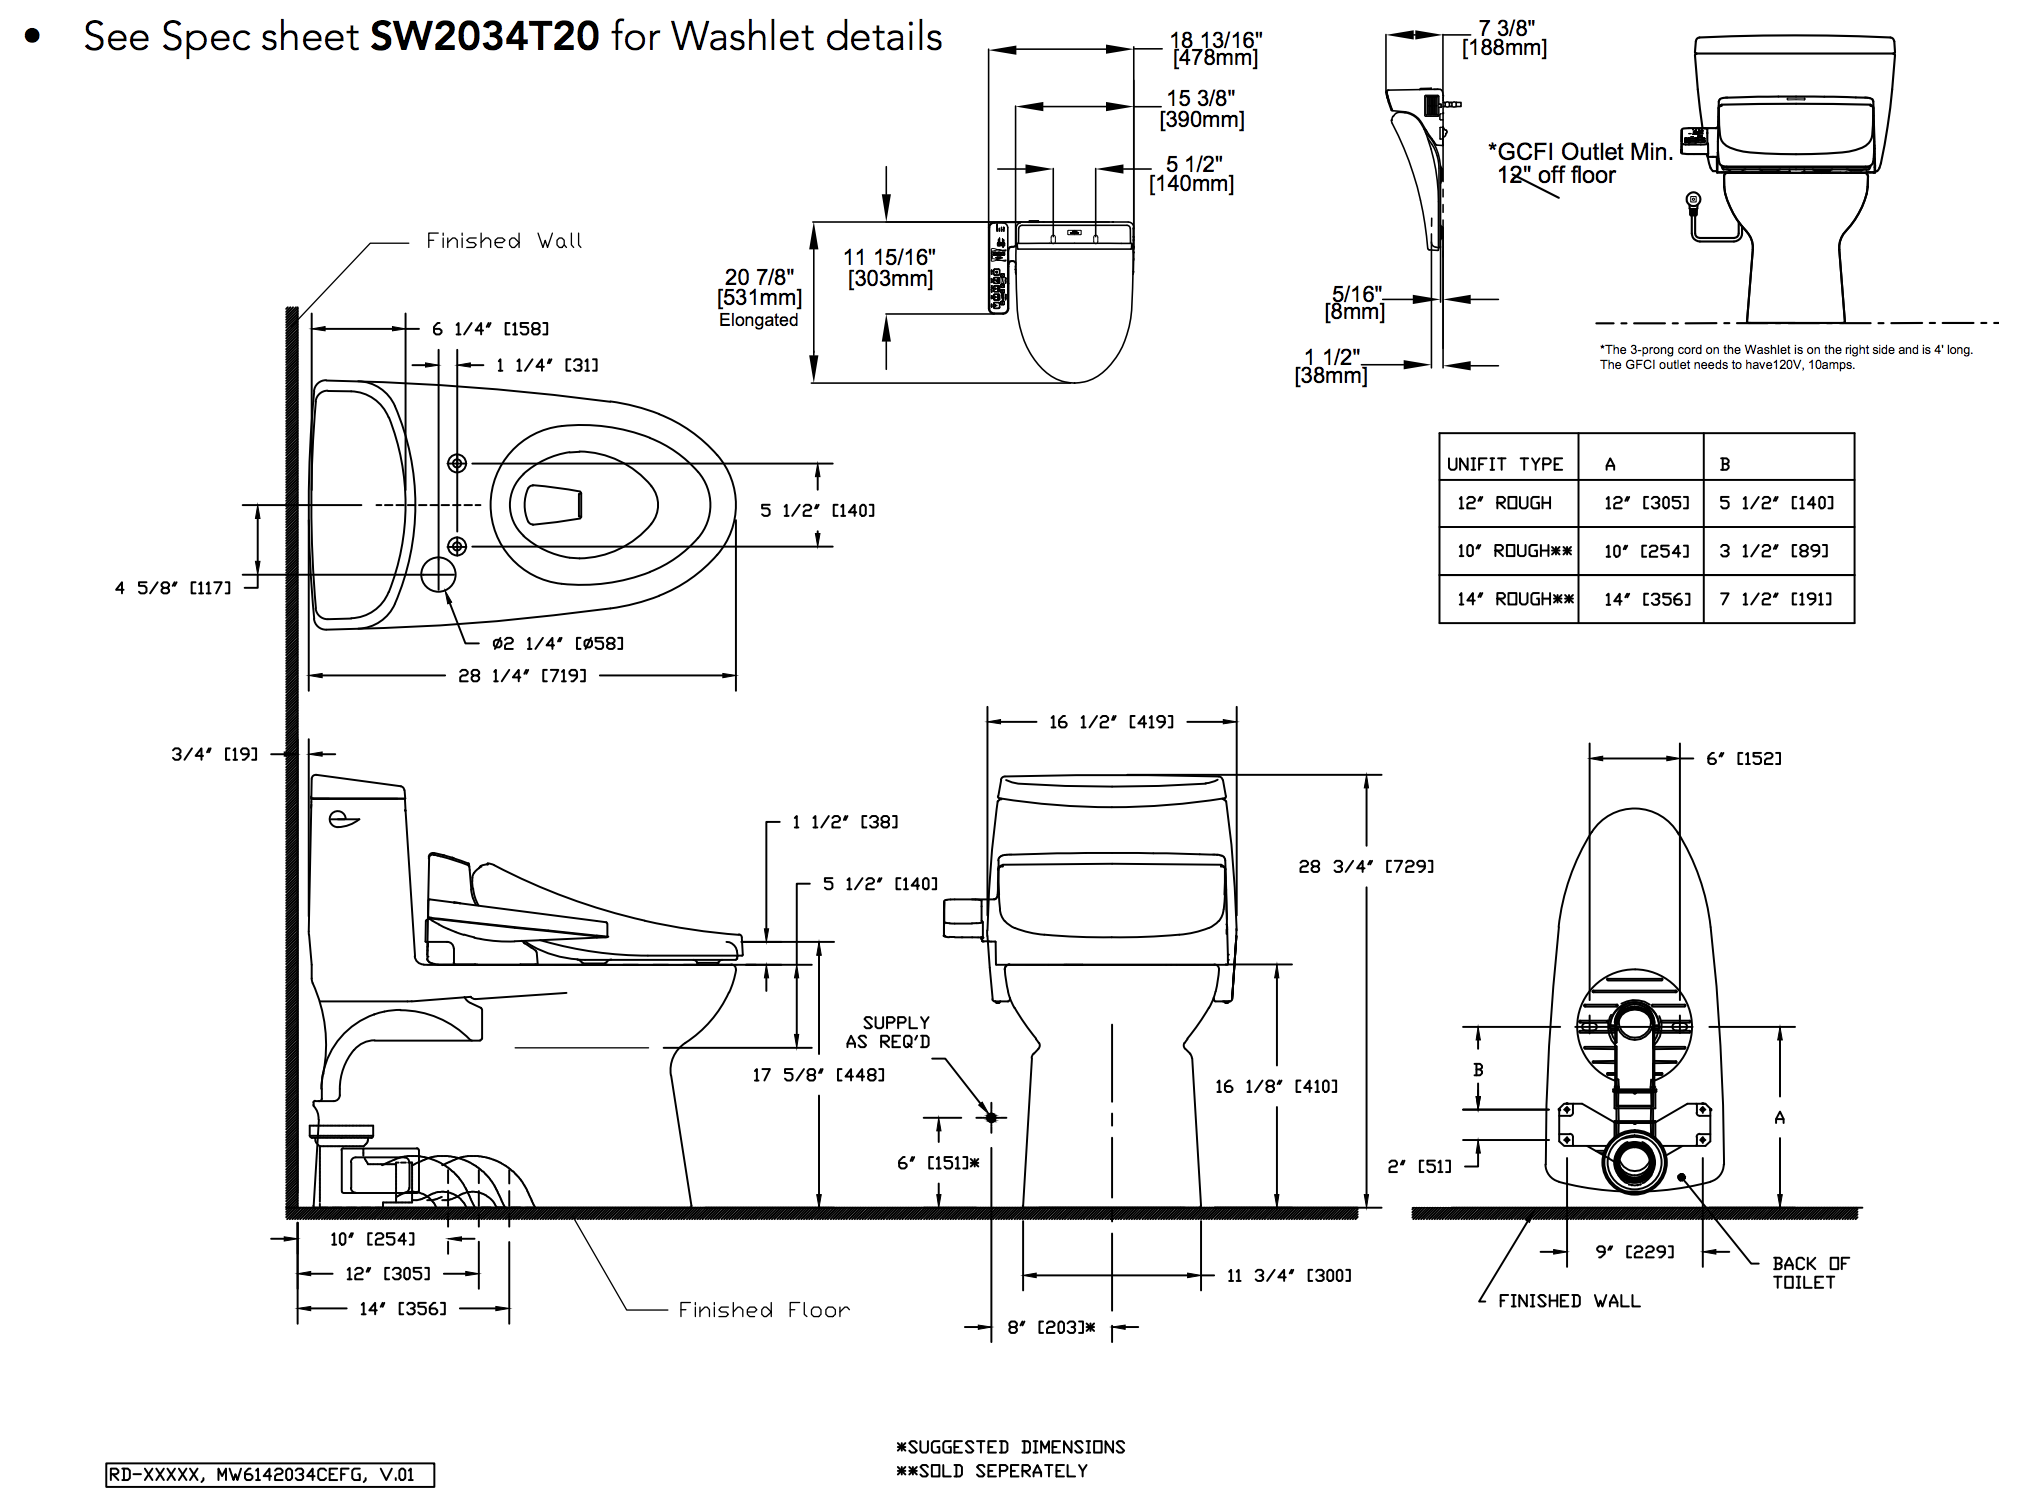 carlyle-ii-washlet-c100-one-piece-toilet-1.28-gpf-diagram.png